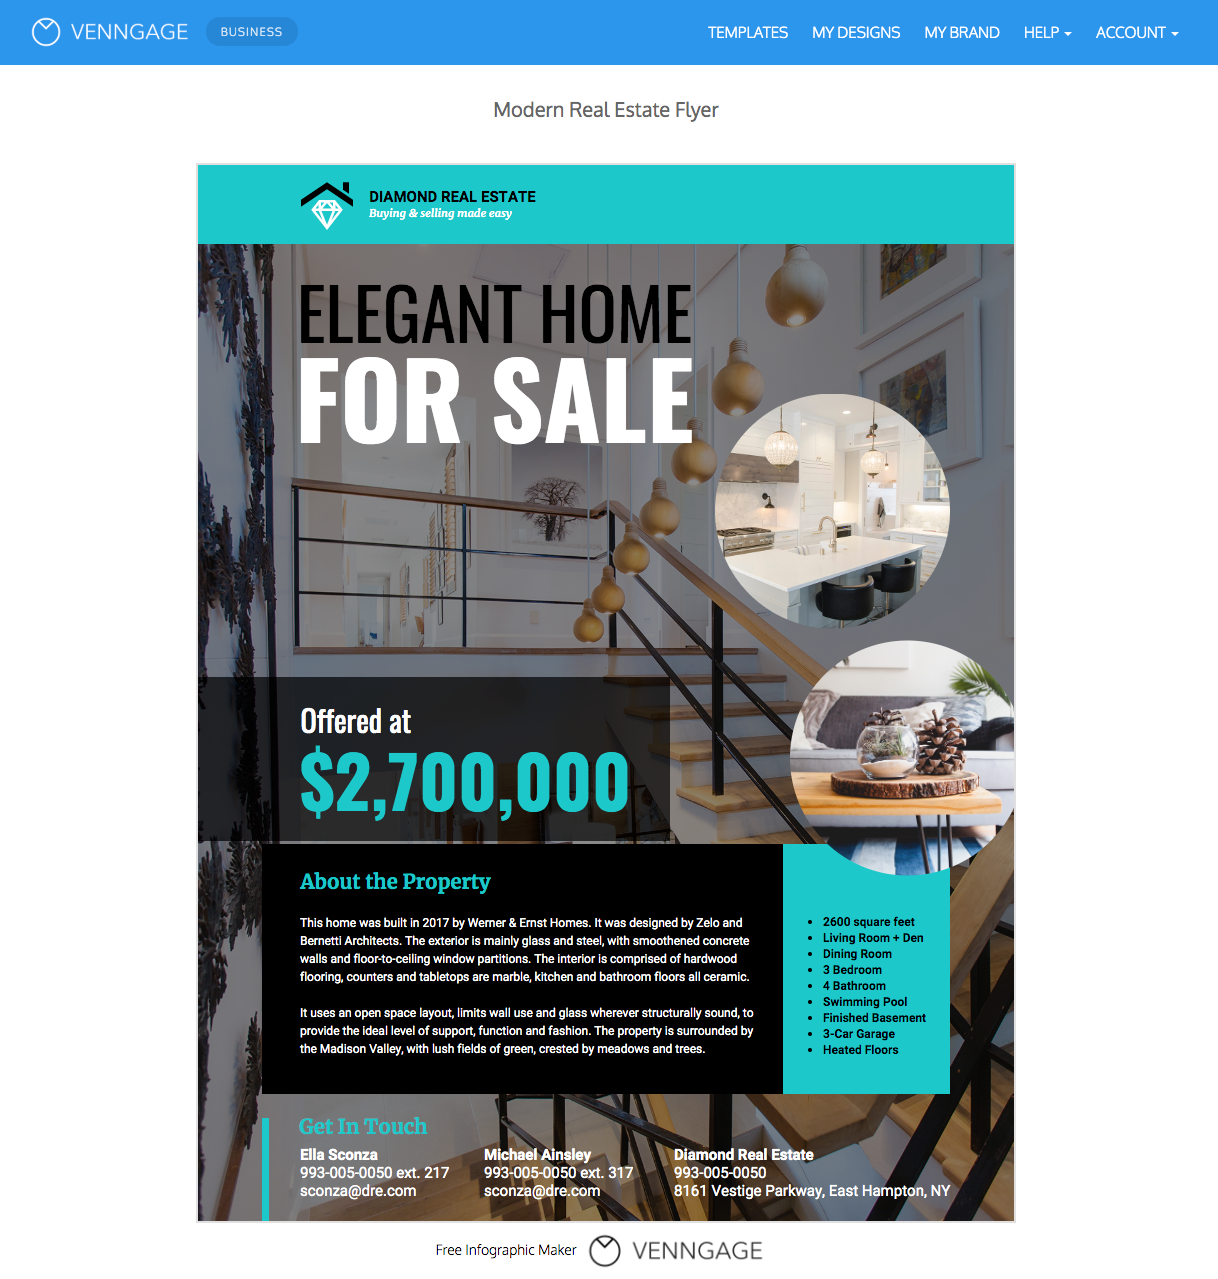 Real Estate Flyer Templates By Venngage